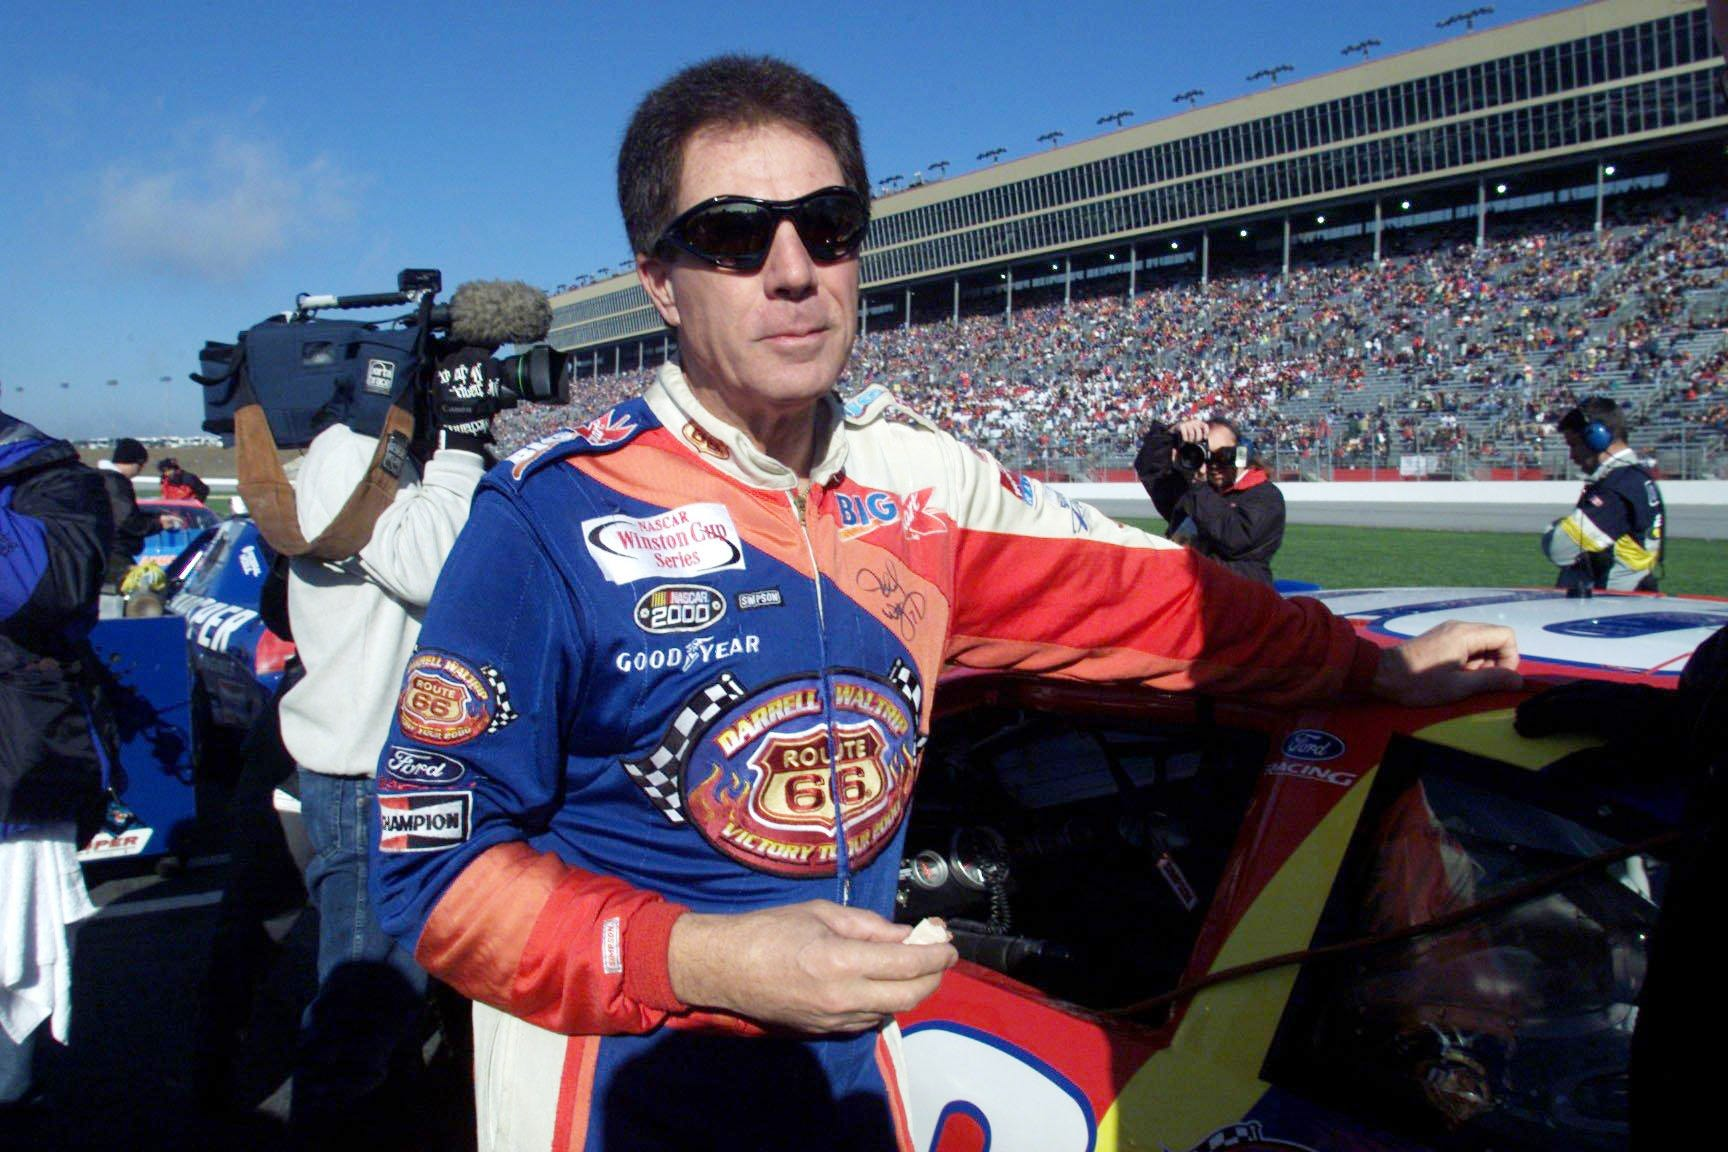 NASCAR Hall of Fame driver Darrell Waltrip on his role with Nashville Superspeedway